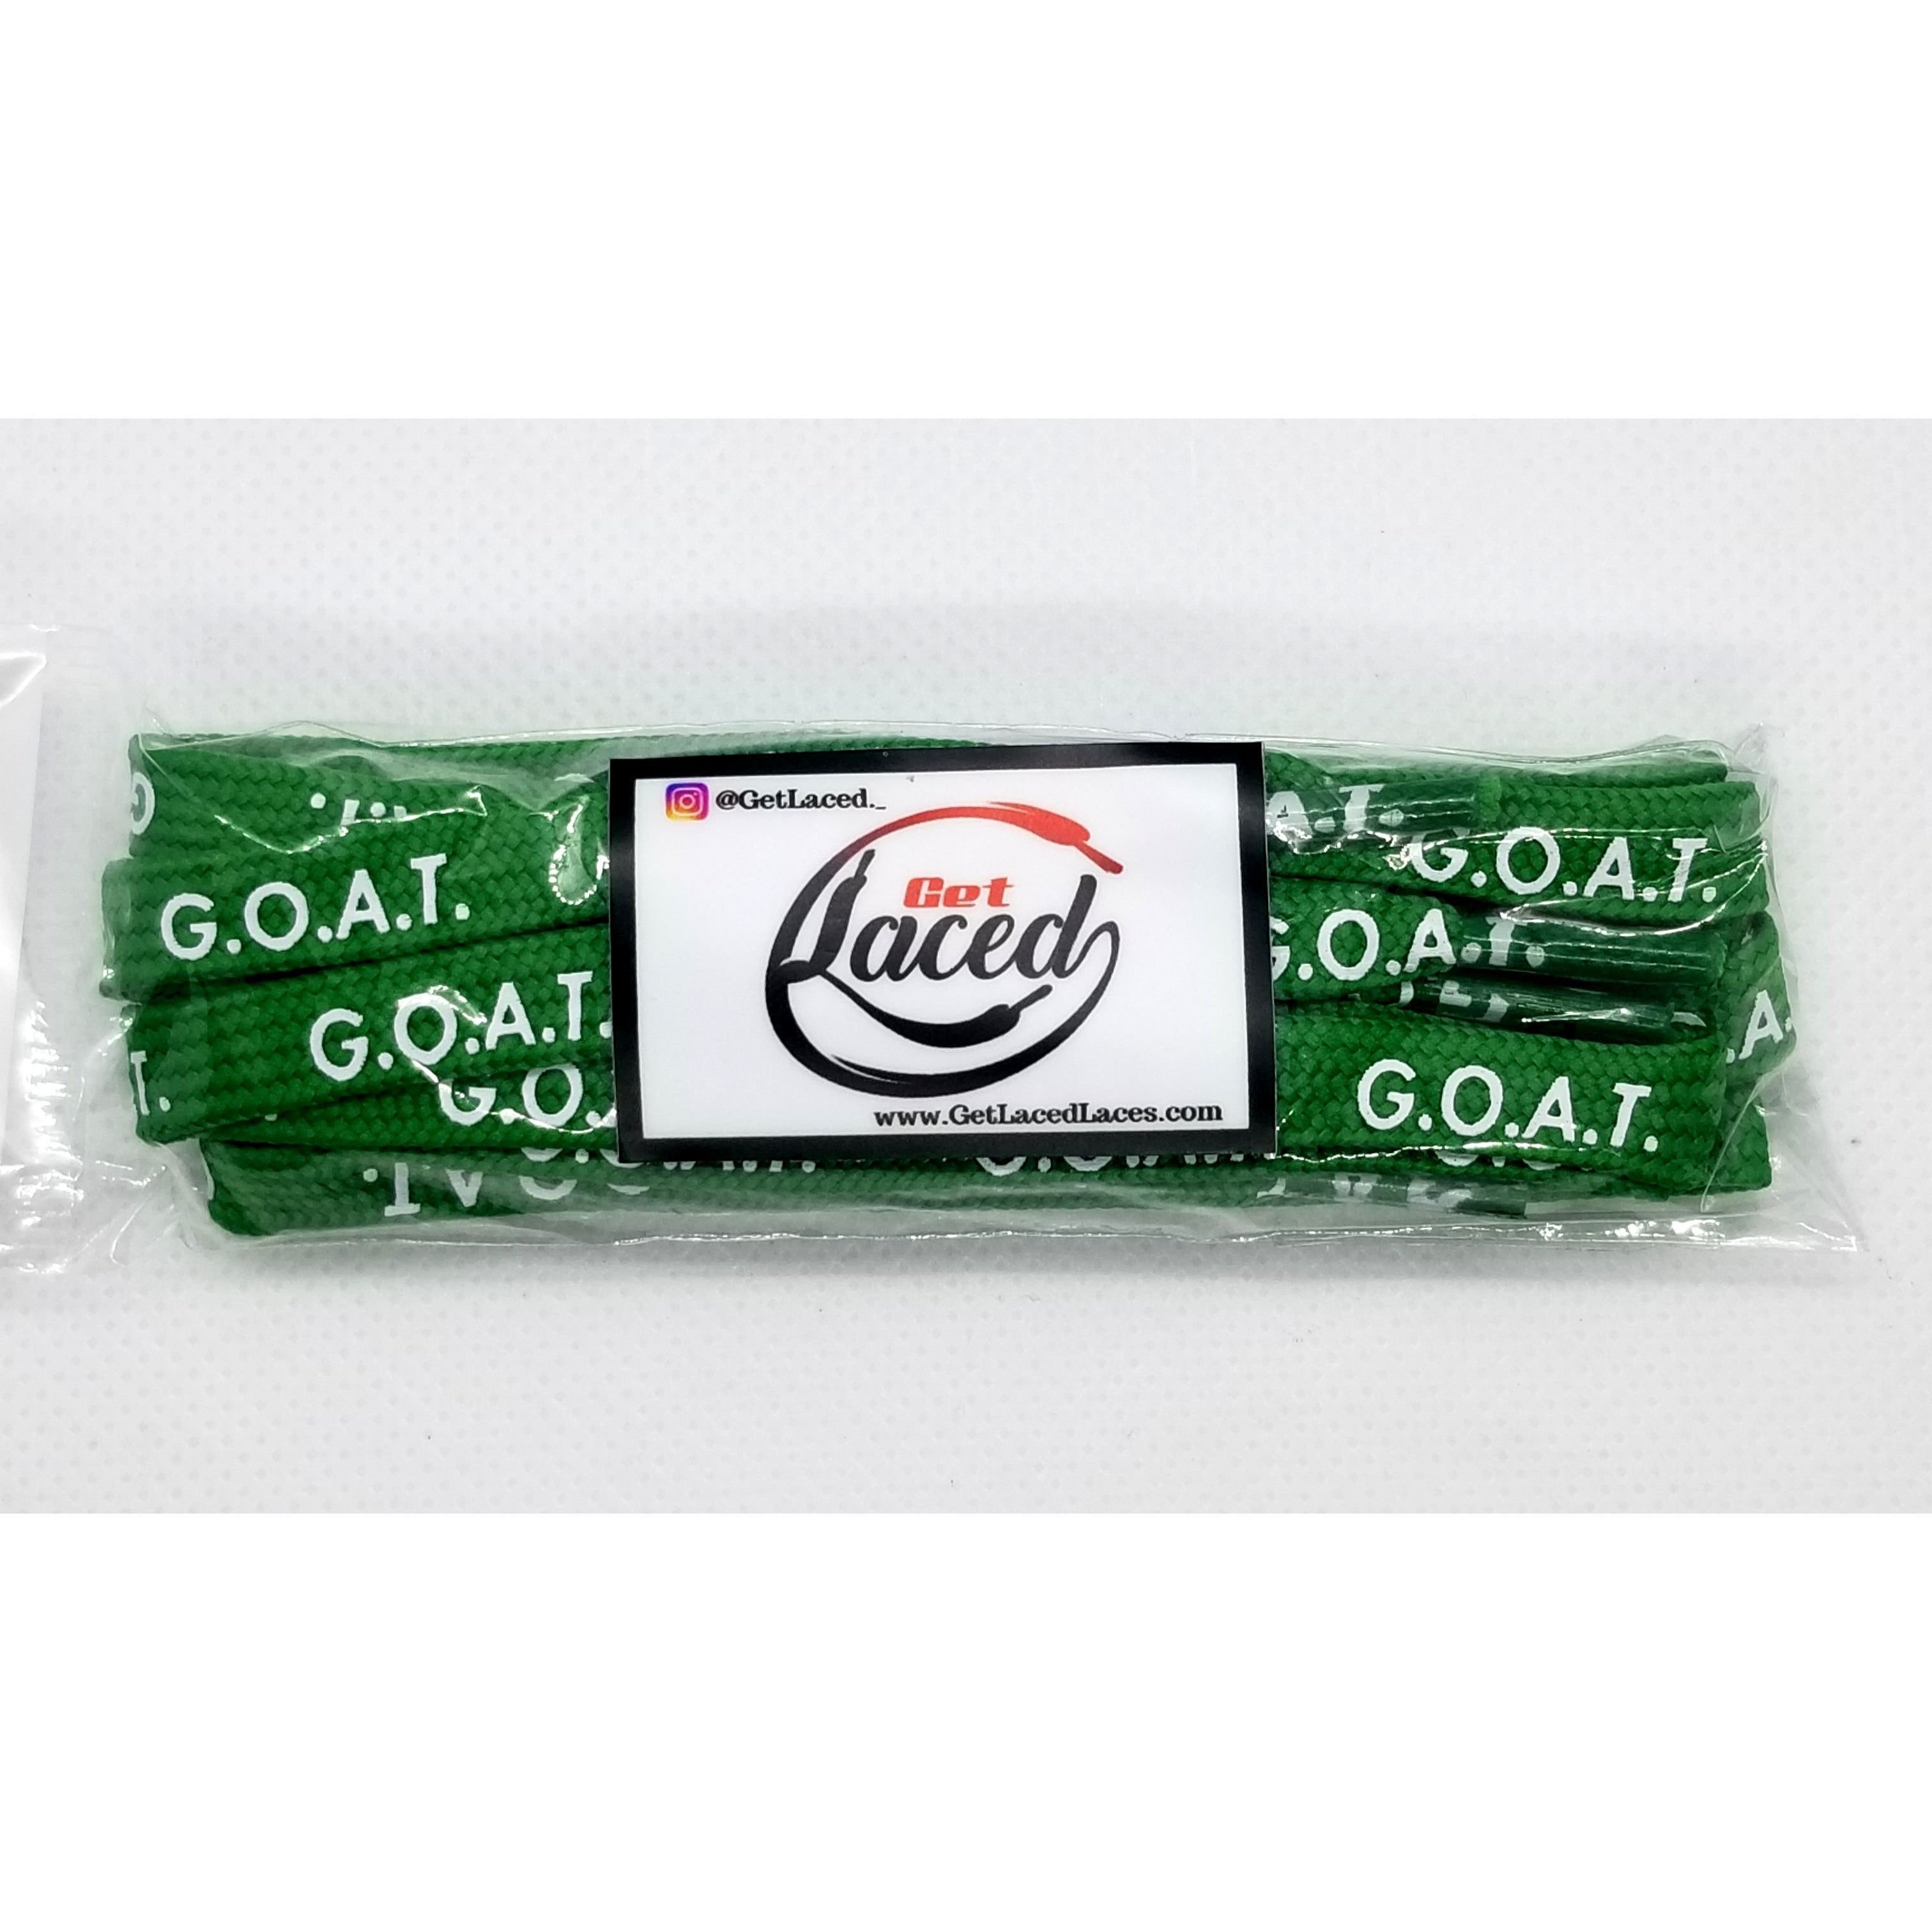 Legendary G.O.A.T. Laces - Green/White - Get Laced Shoelaces